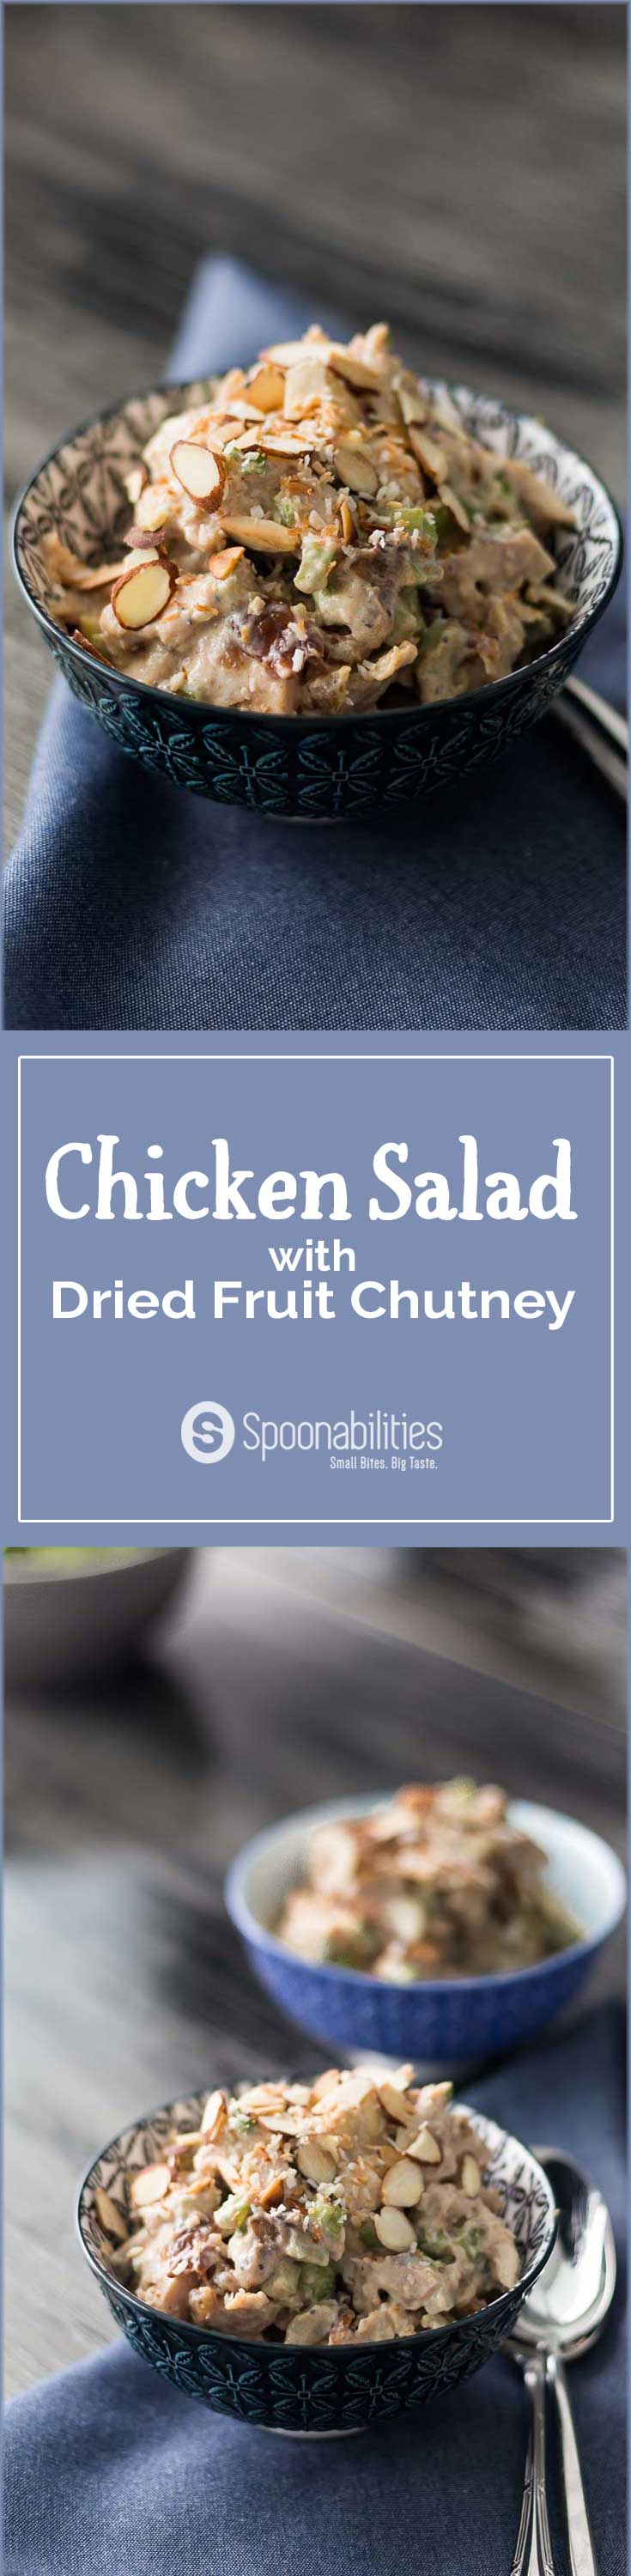 Easy Chicken Salad Recipe with Dried Fruit Chutney.Serve on lettuce & top with toasted almonds & toasted coconut flakes. This is unique and Tasty Salad. Spoonabilities.com